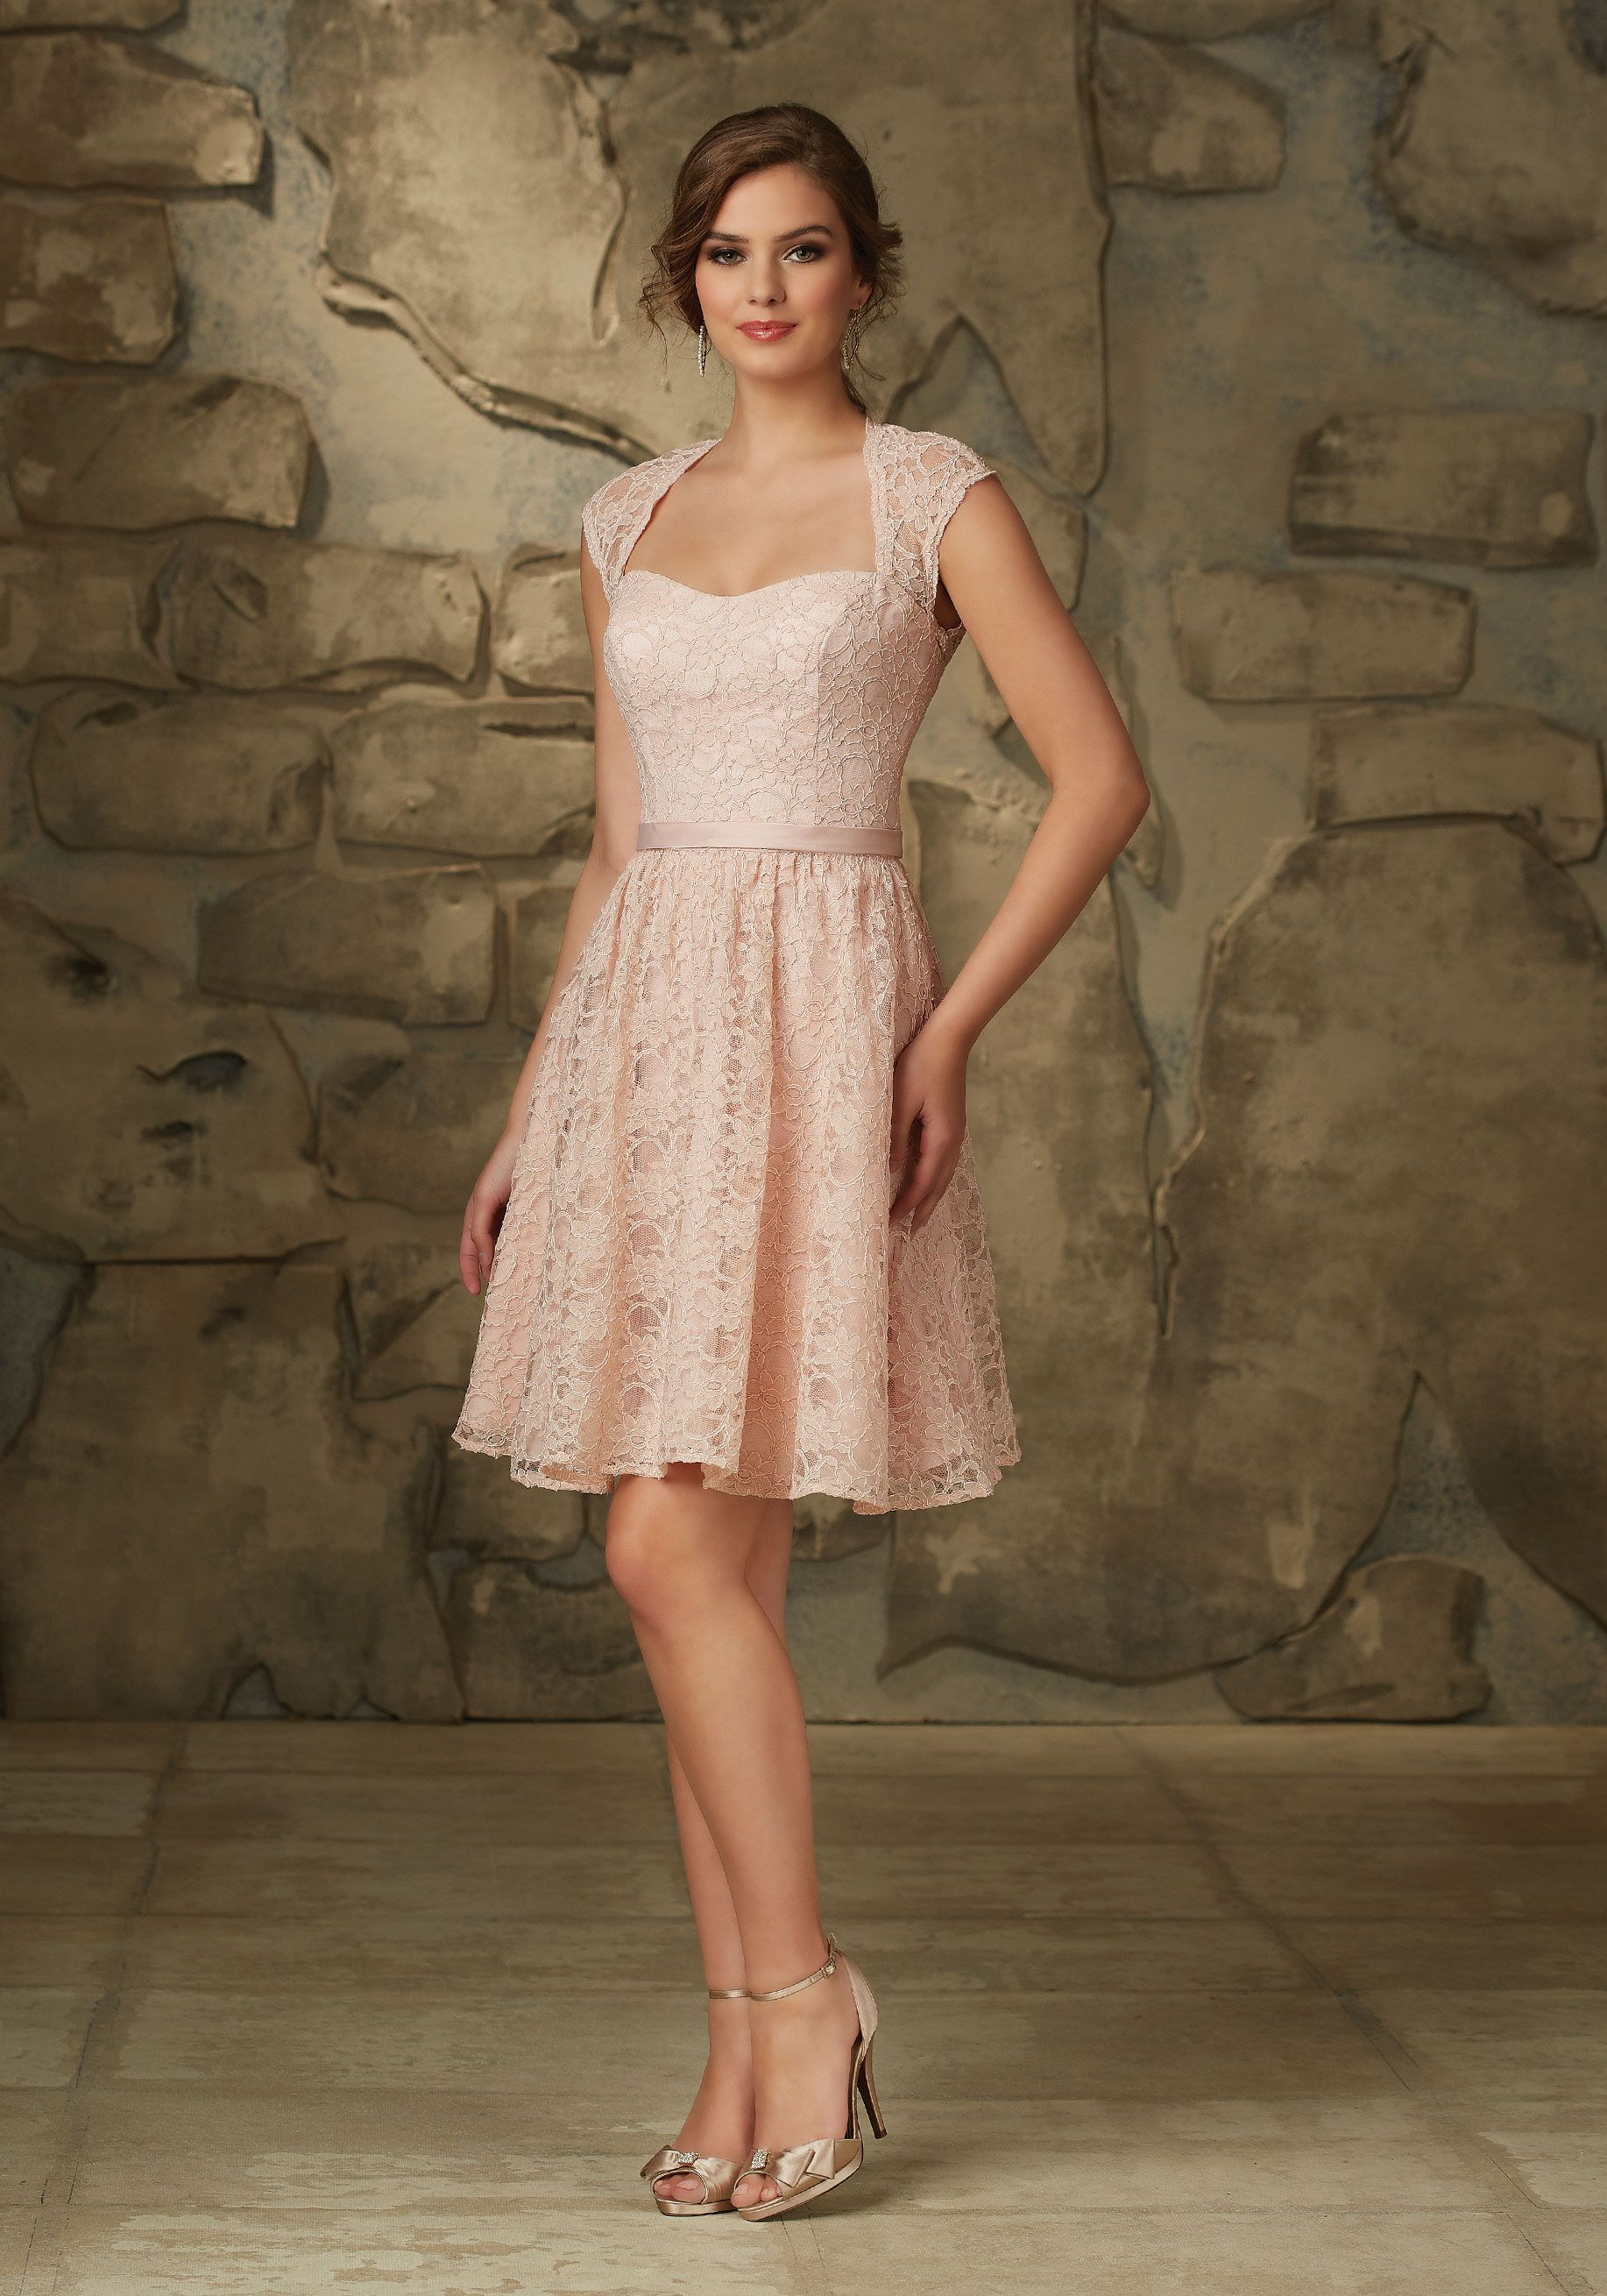 Romantic lace bridesmaid dress with cap sleeves and keyhole back i